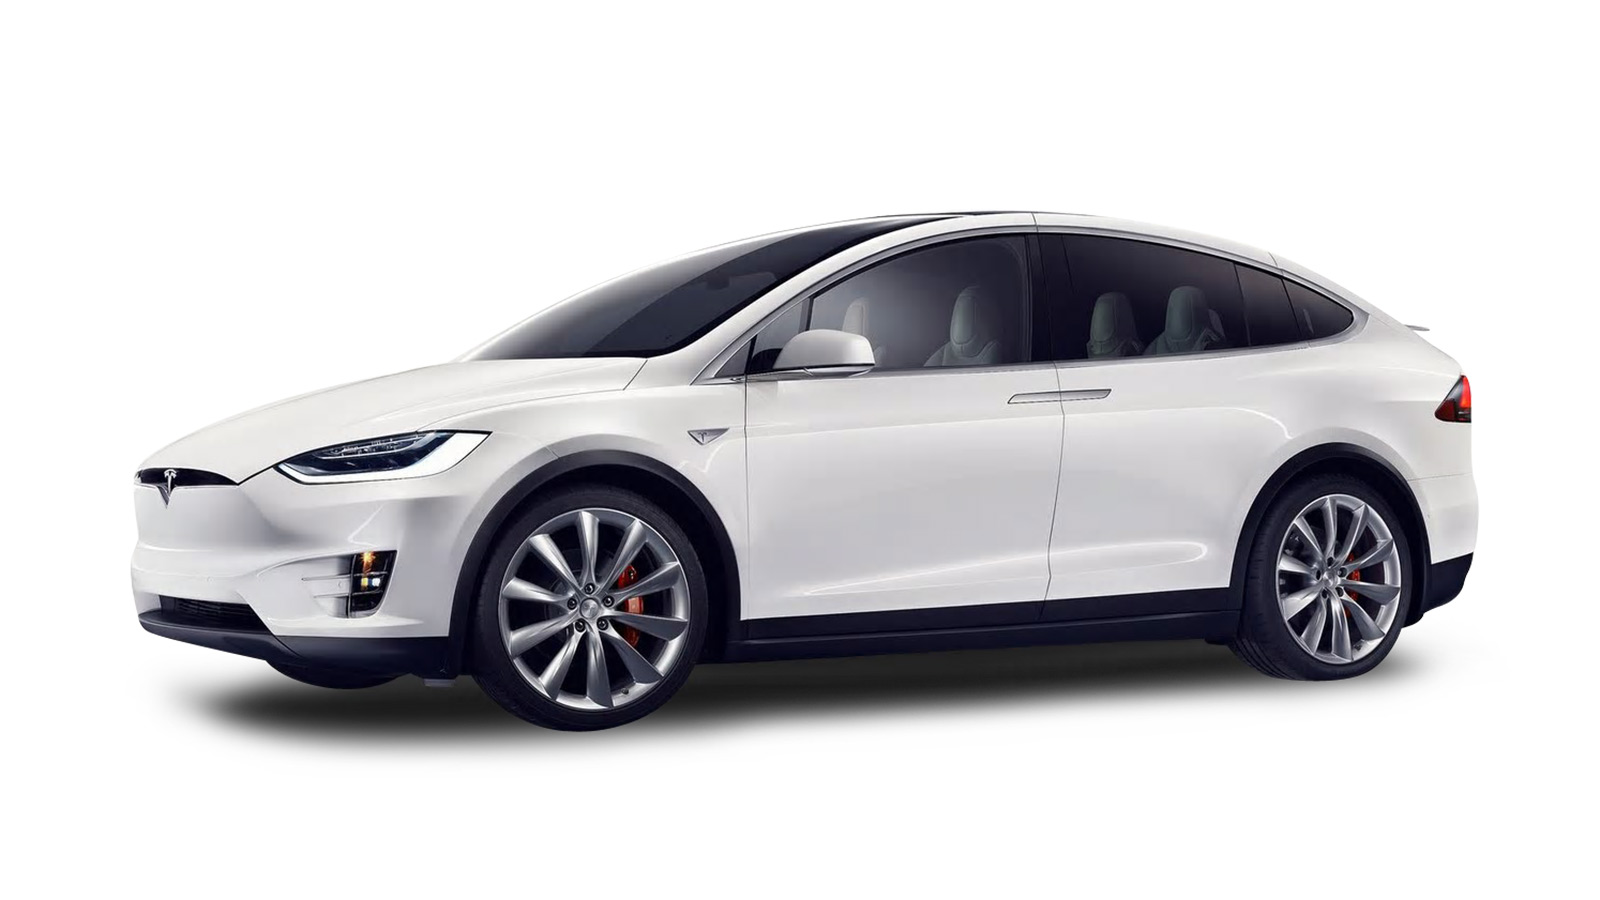 Compare Vehicles Drive Electric Vermont 2015 Chevy Volt Crossover Tesla Model X 100d